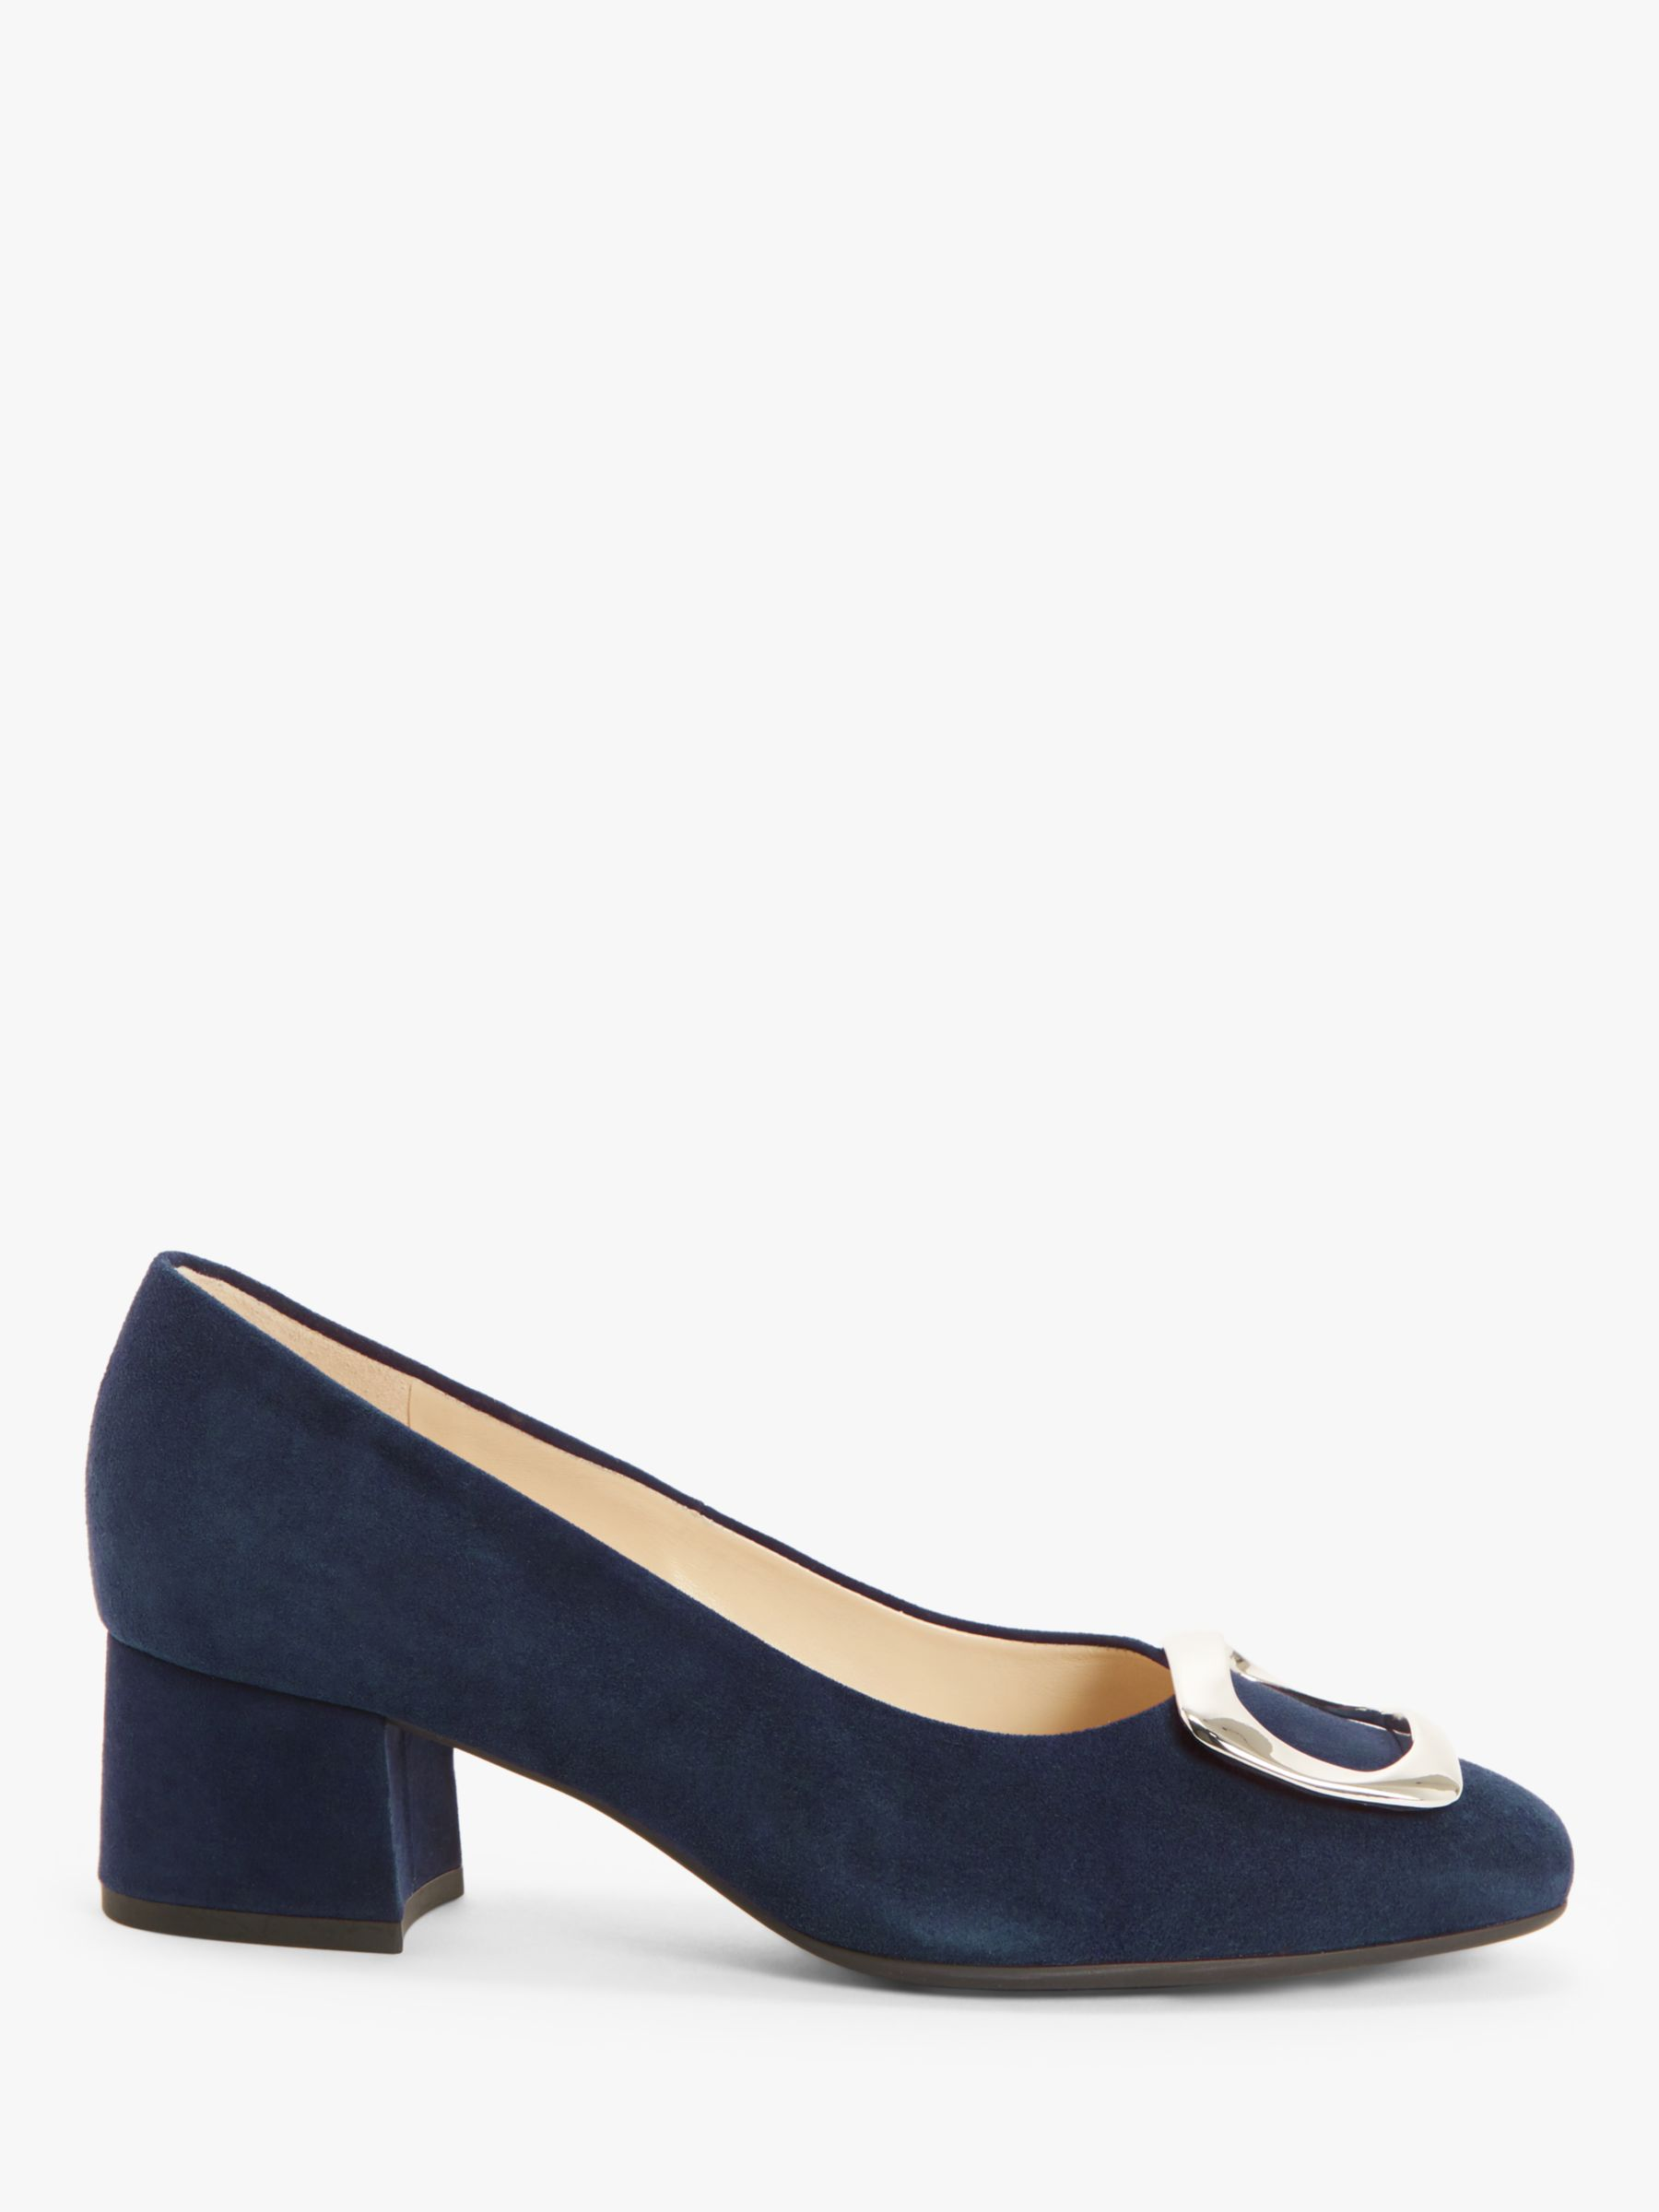 Peter Kaiser Peter Kaiser Pauline Suede Buckle Court Shoes, Navy